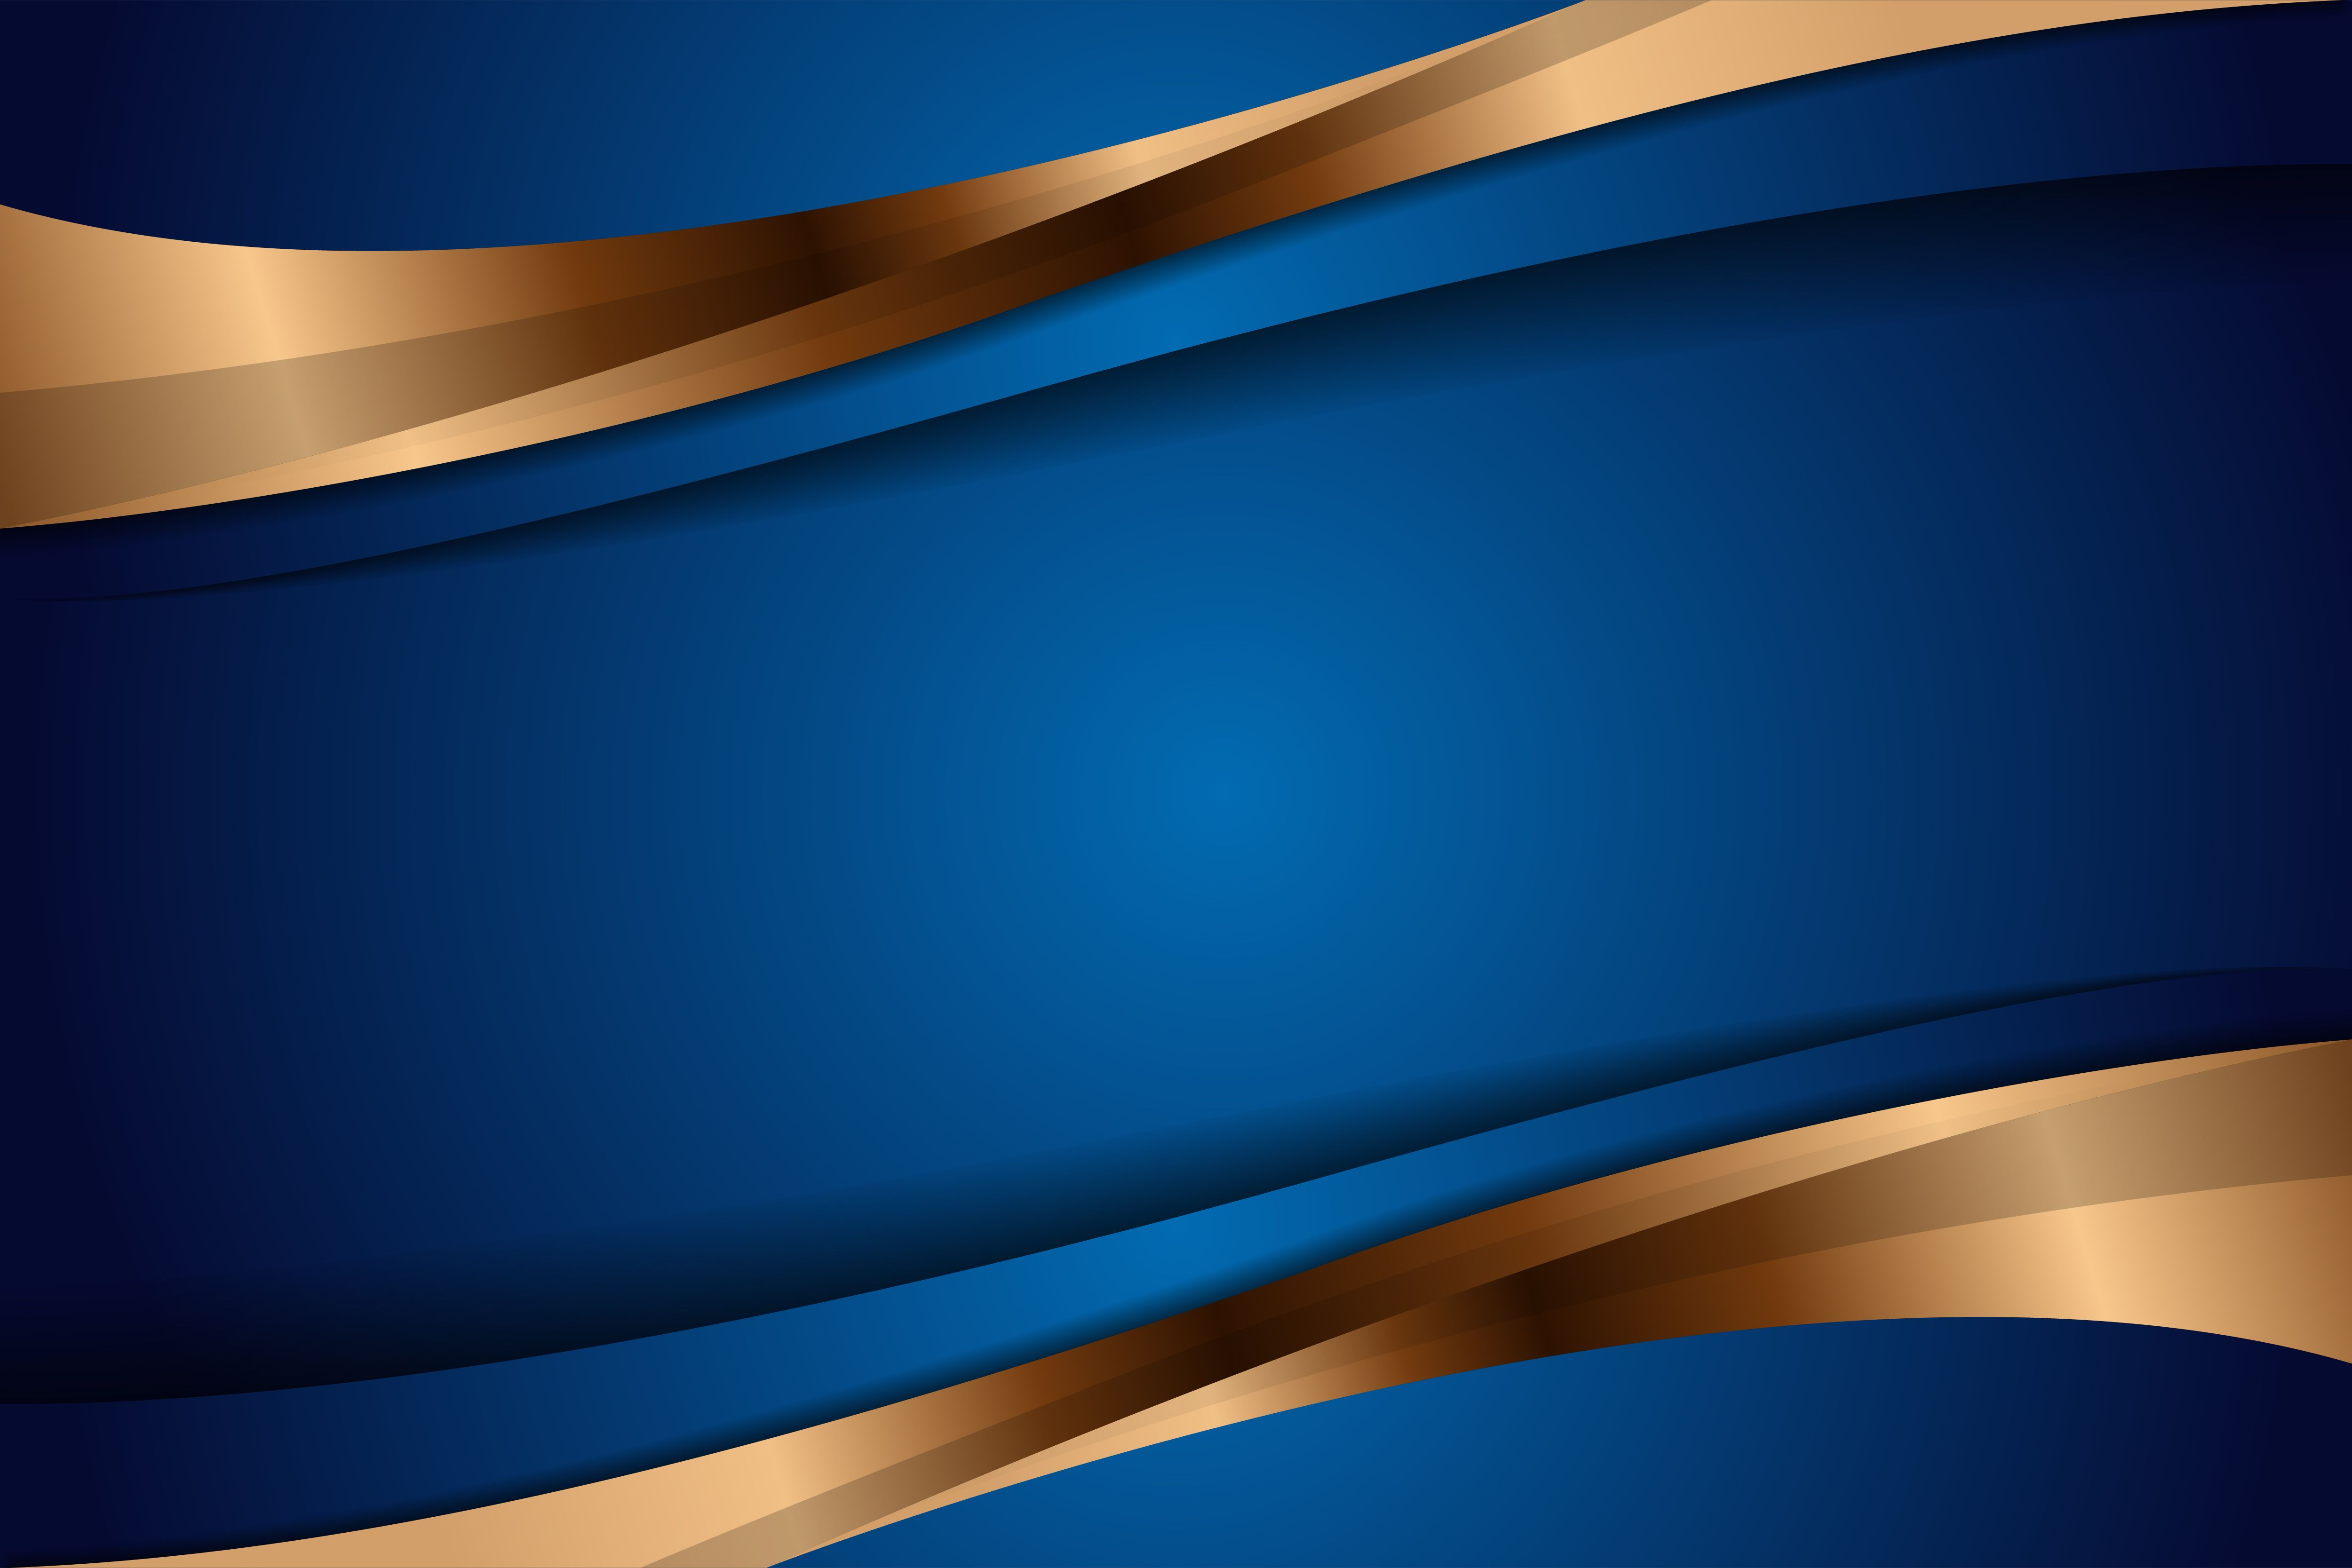 Abstract Background Blue Gold In 2020 Abstract Backgrounds Blue